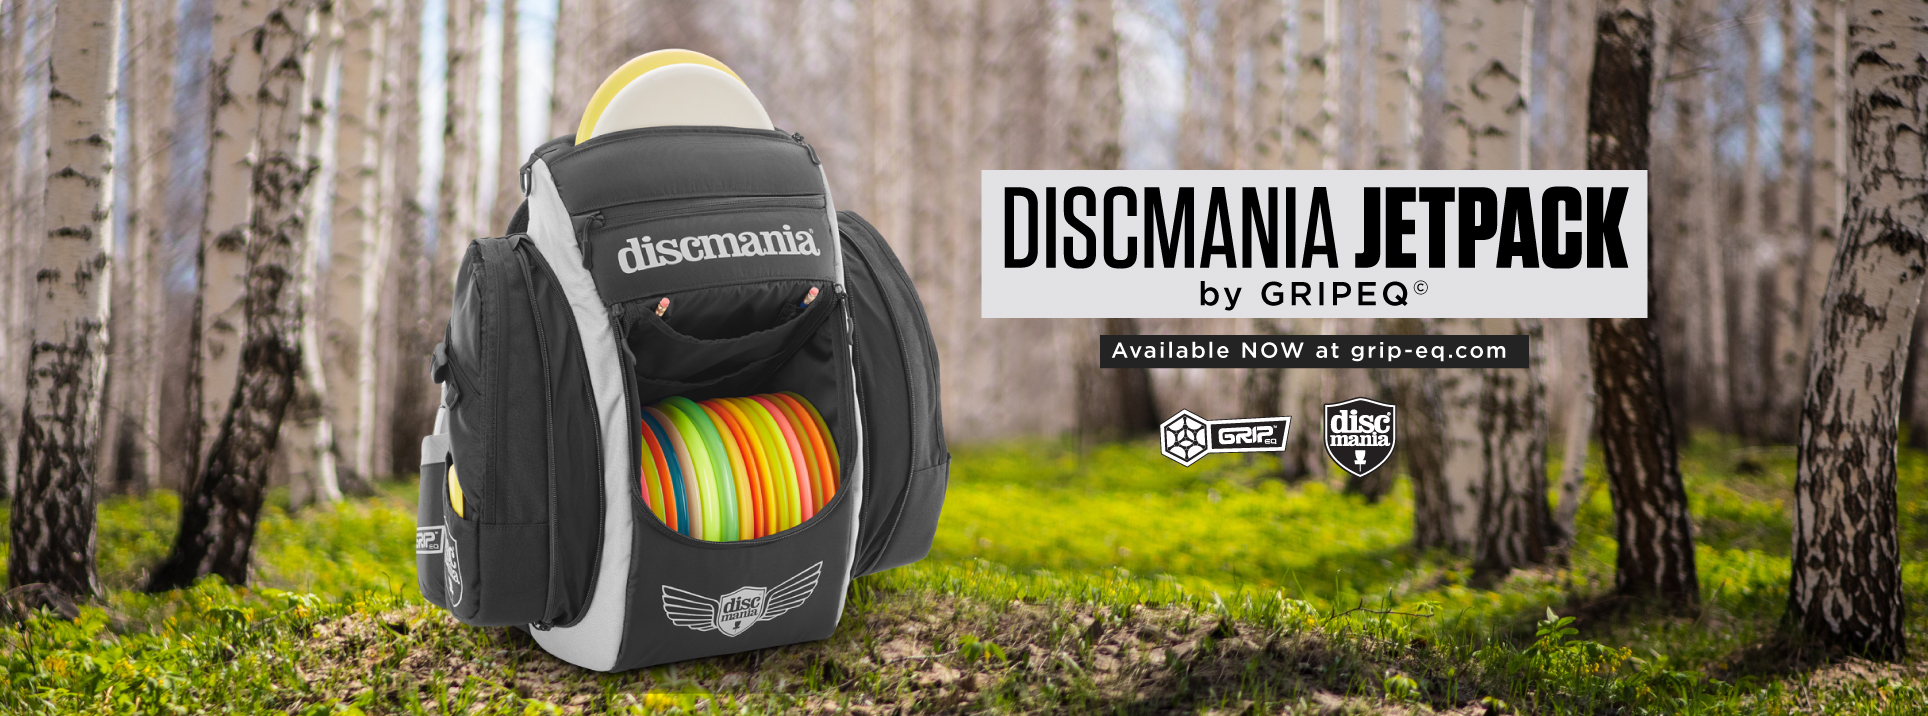 Discmania JetPack bag social promo graphic